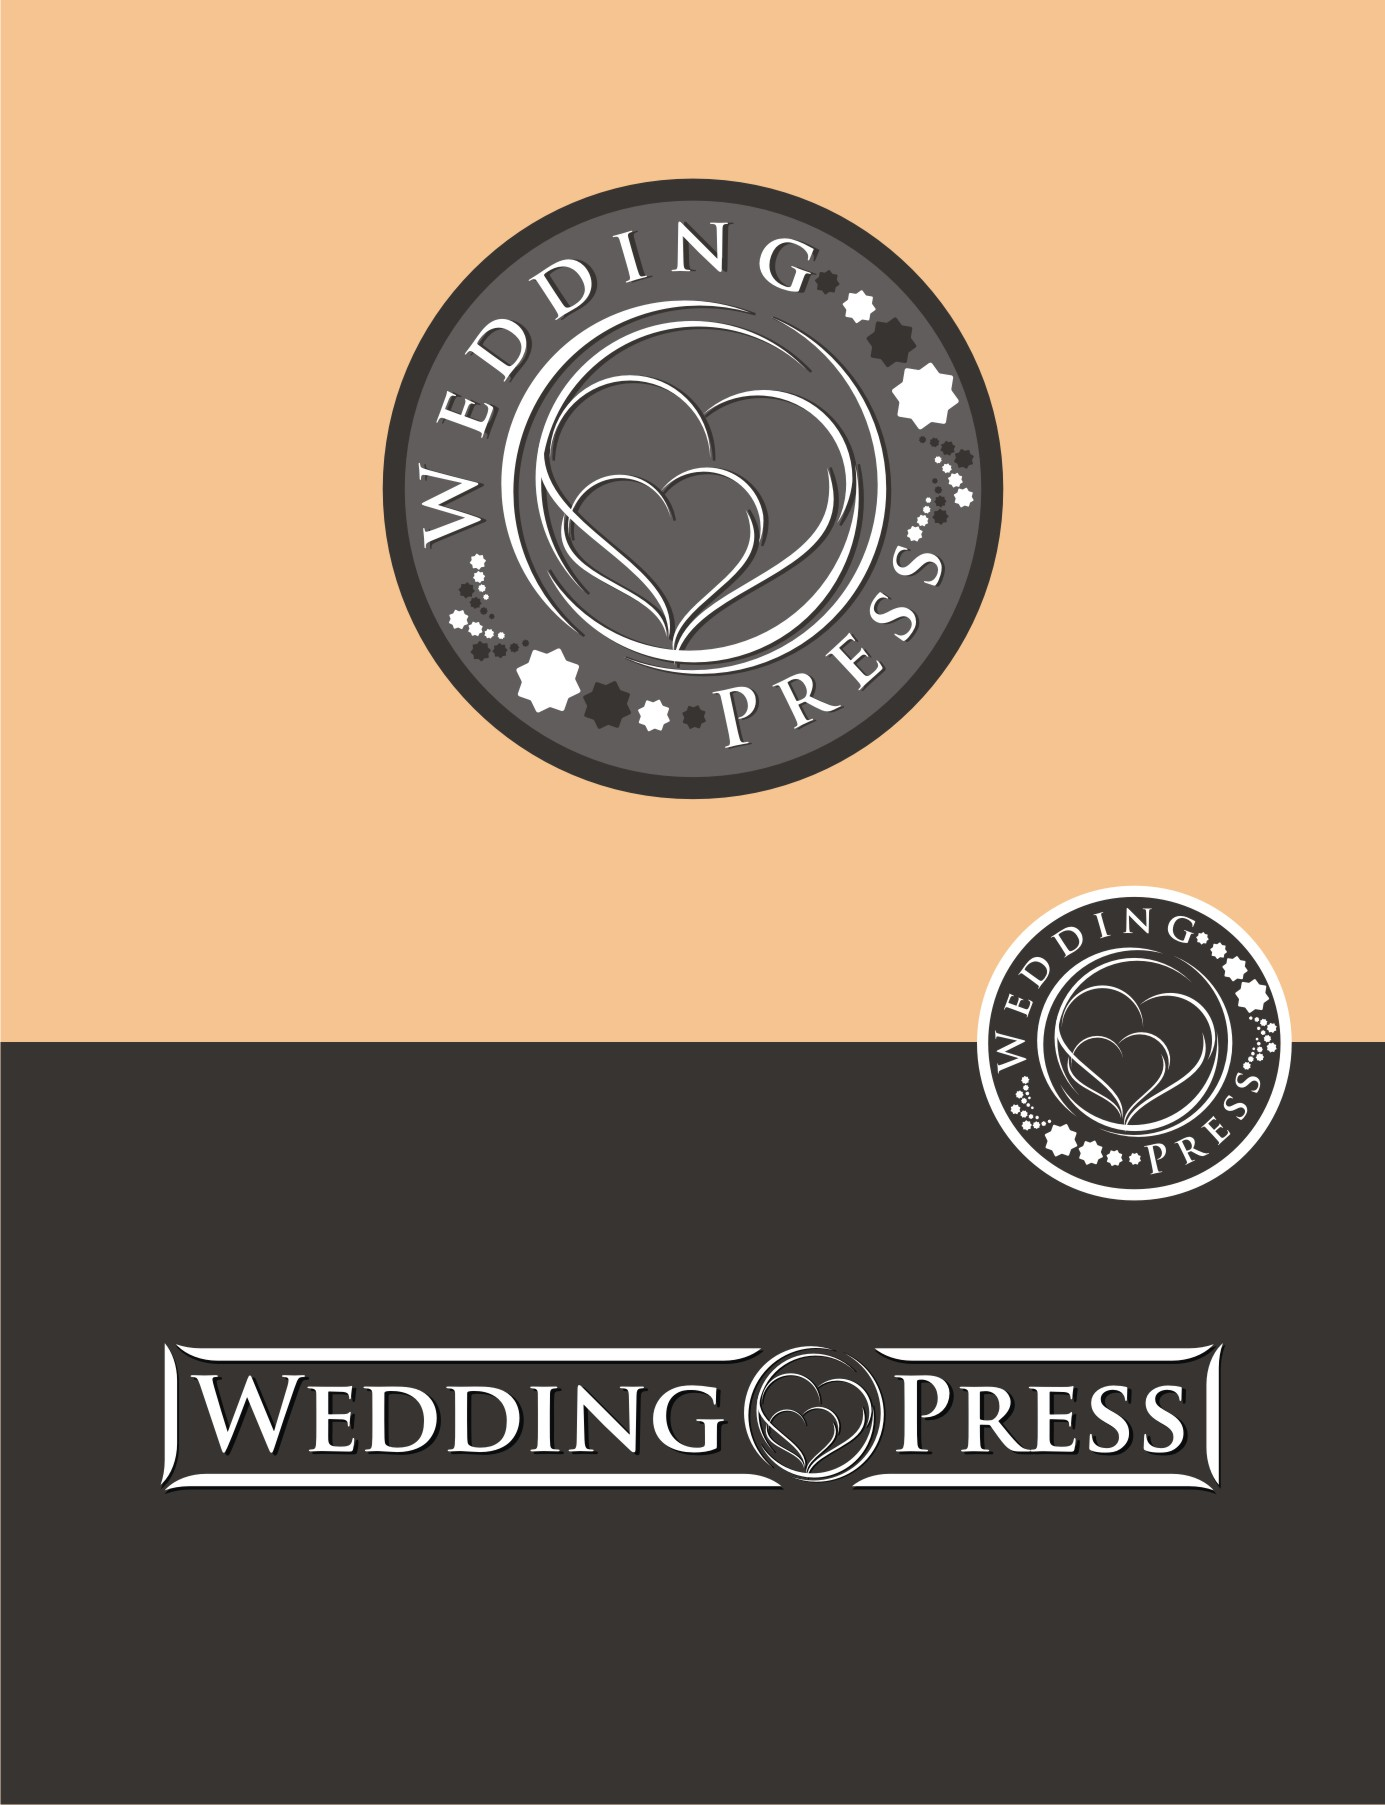 Logo Design by Private User - Entry No. 36 in the Logo Design Contest Wedding Writes Logo Design.